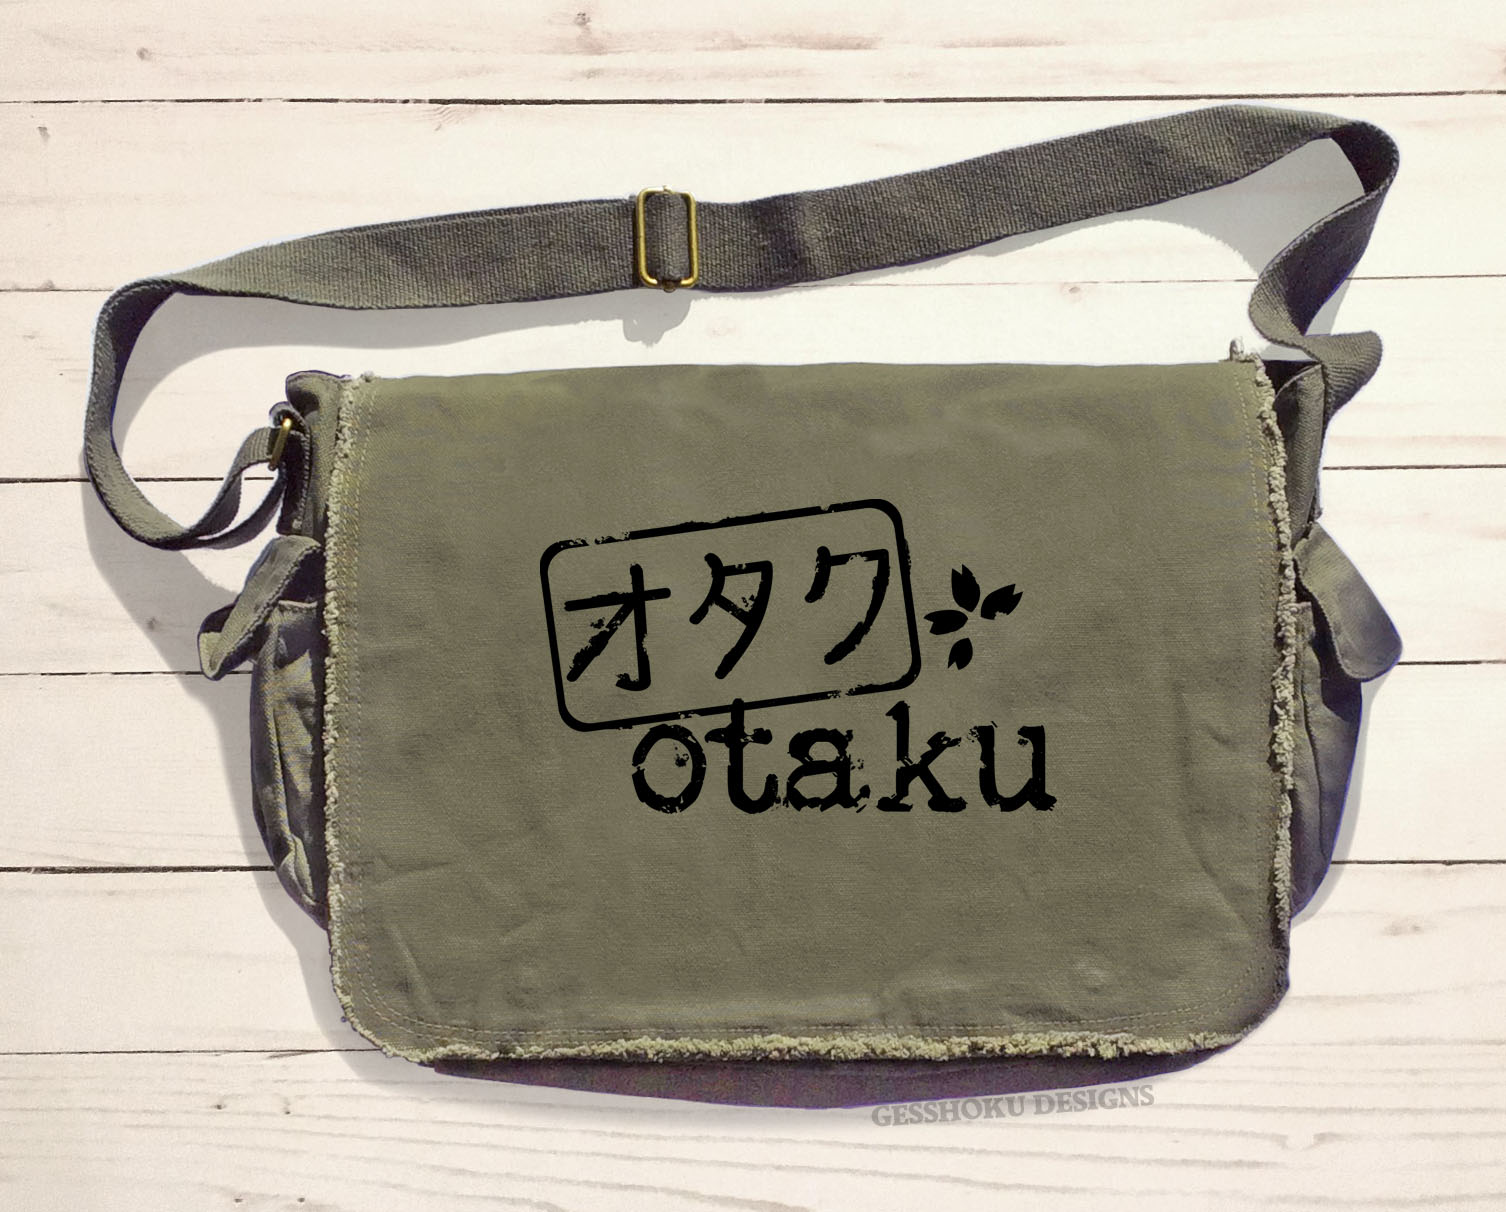 Otaku Stamp Messenger Bag - Khaki Green